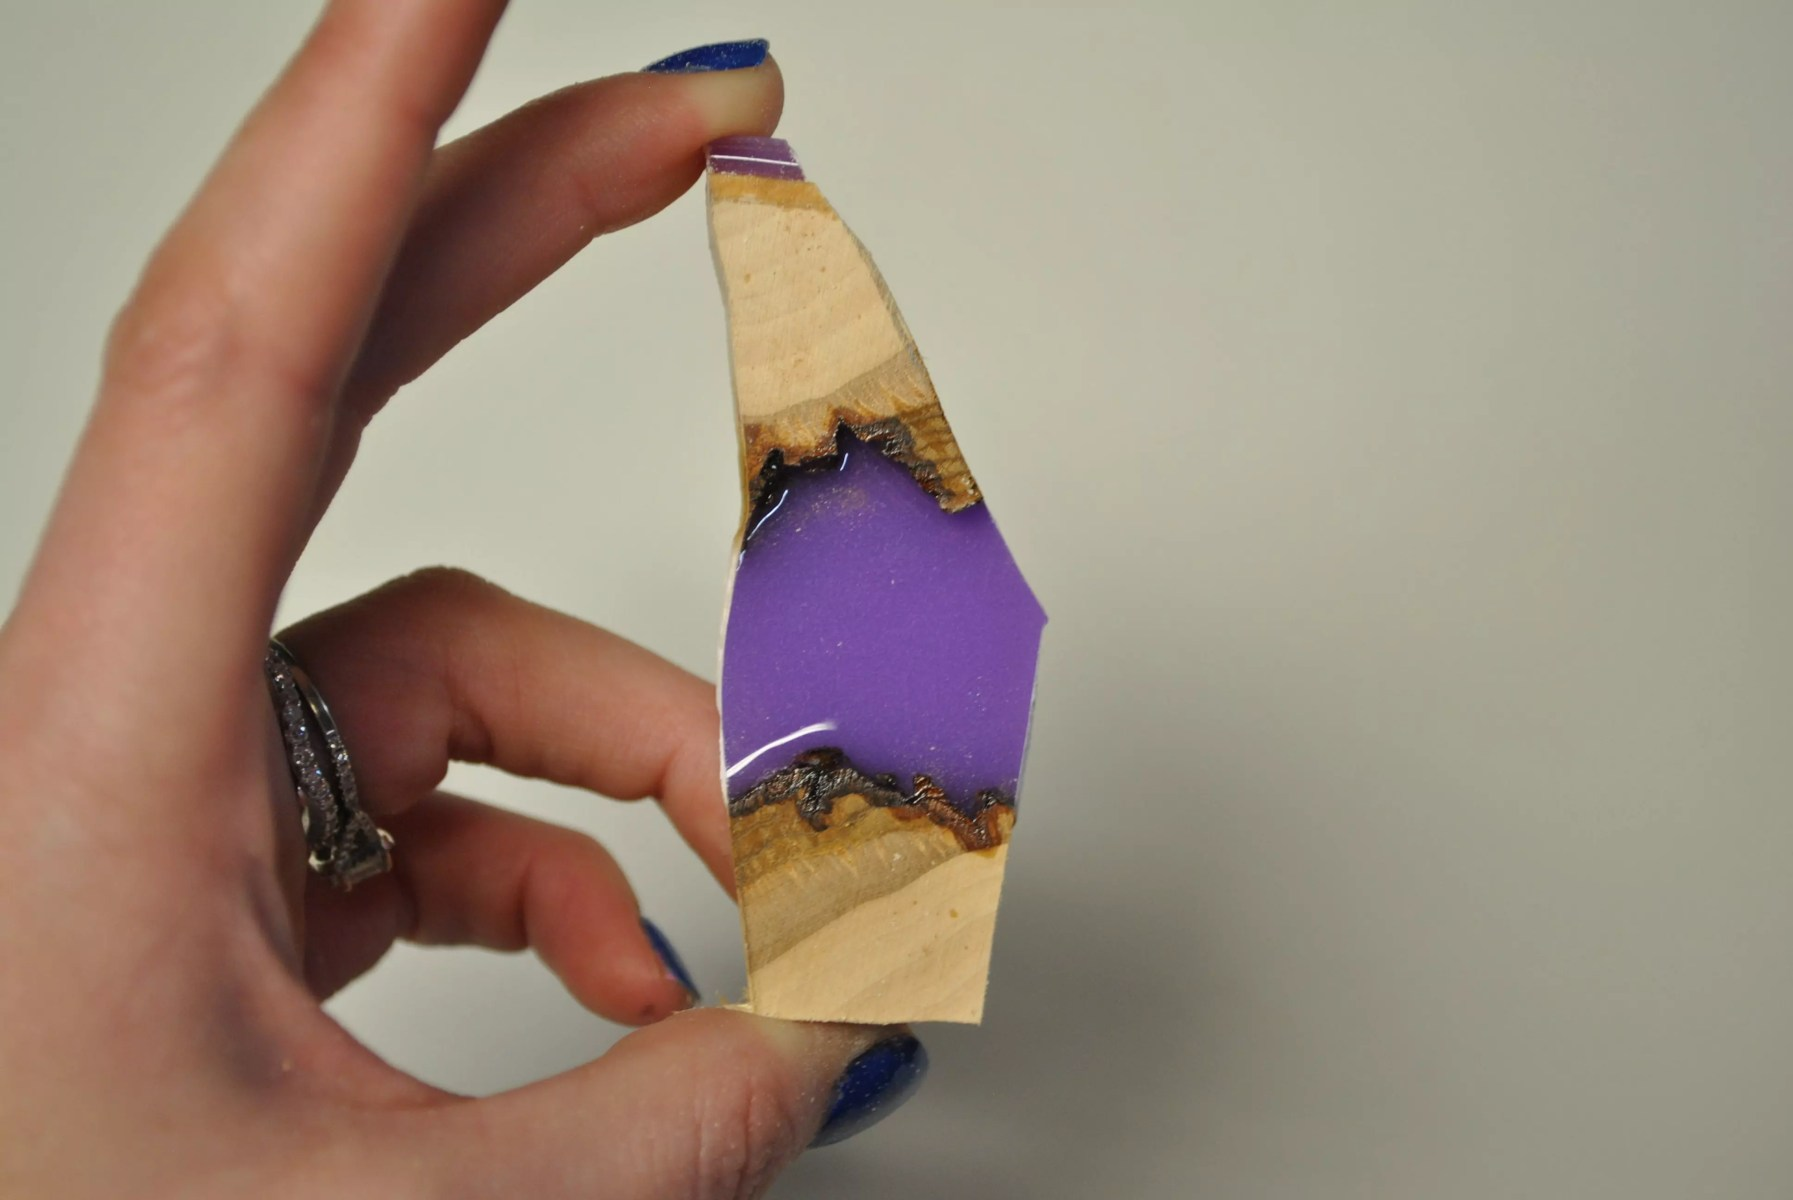 left hand holding up wood and lavender resin shard